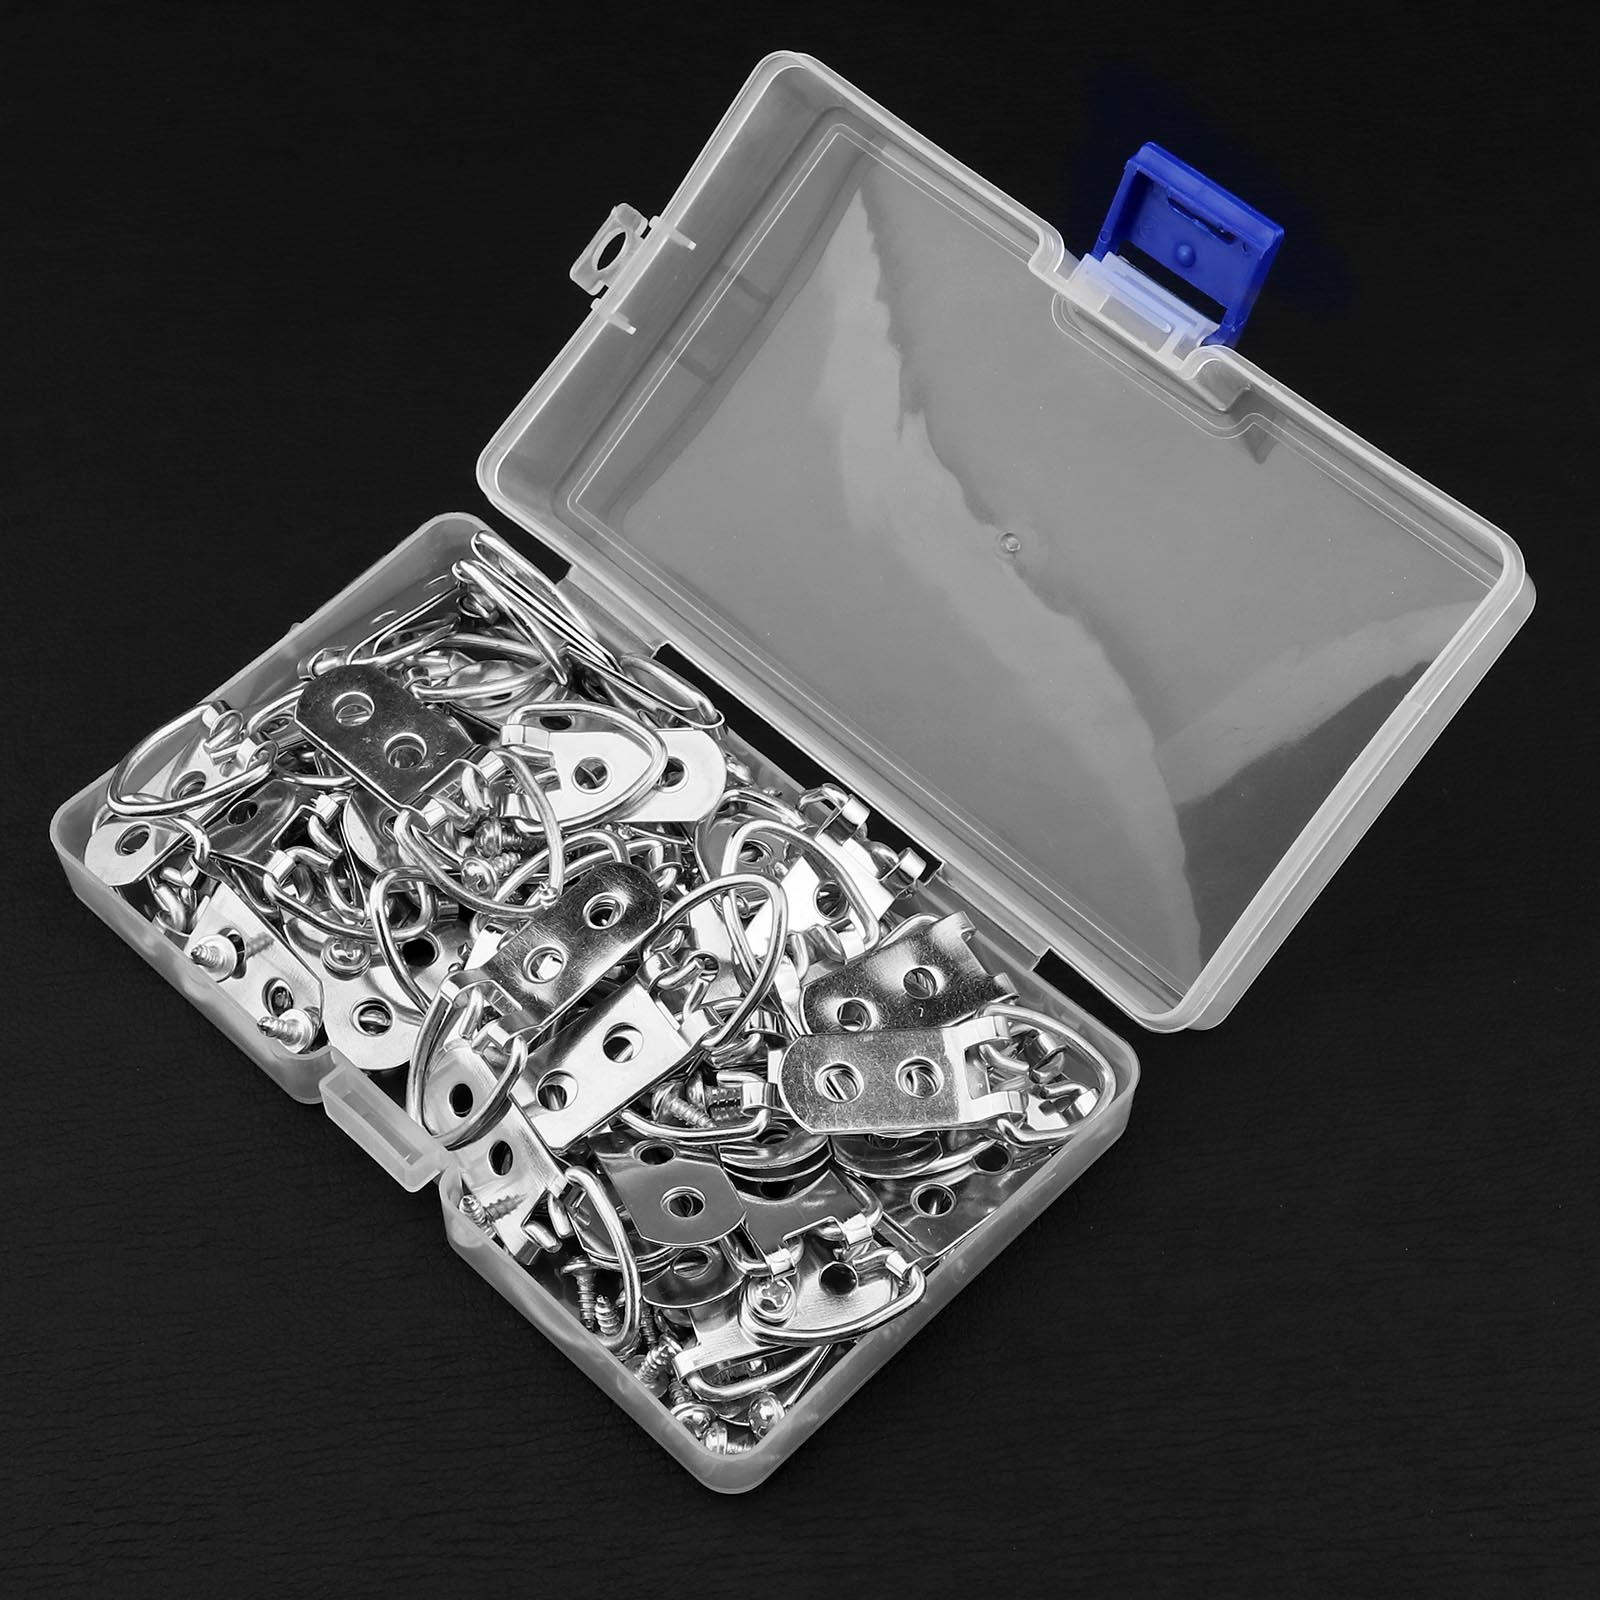 Picture-Frame-Hooks-Hanger-with-Screws-Kit-Metal-Material-Replacement-Tool